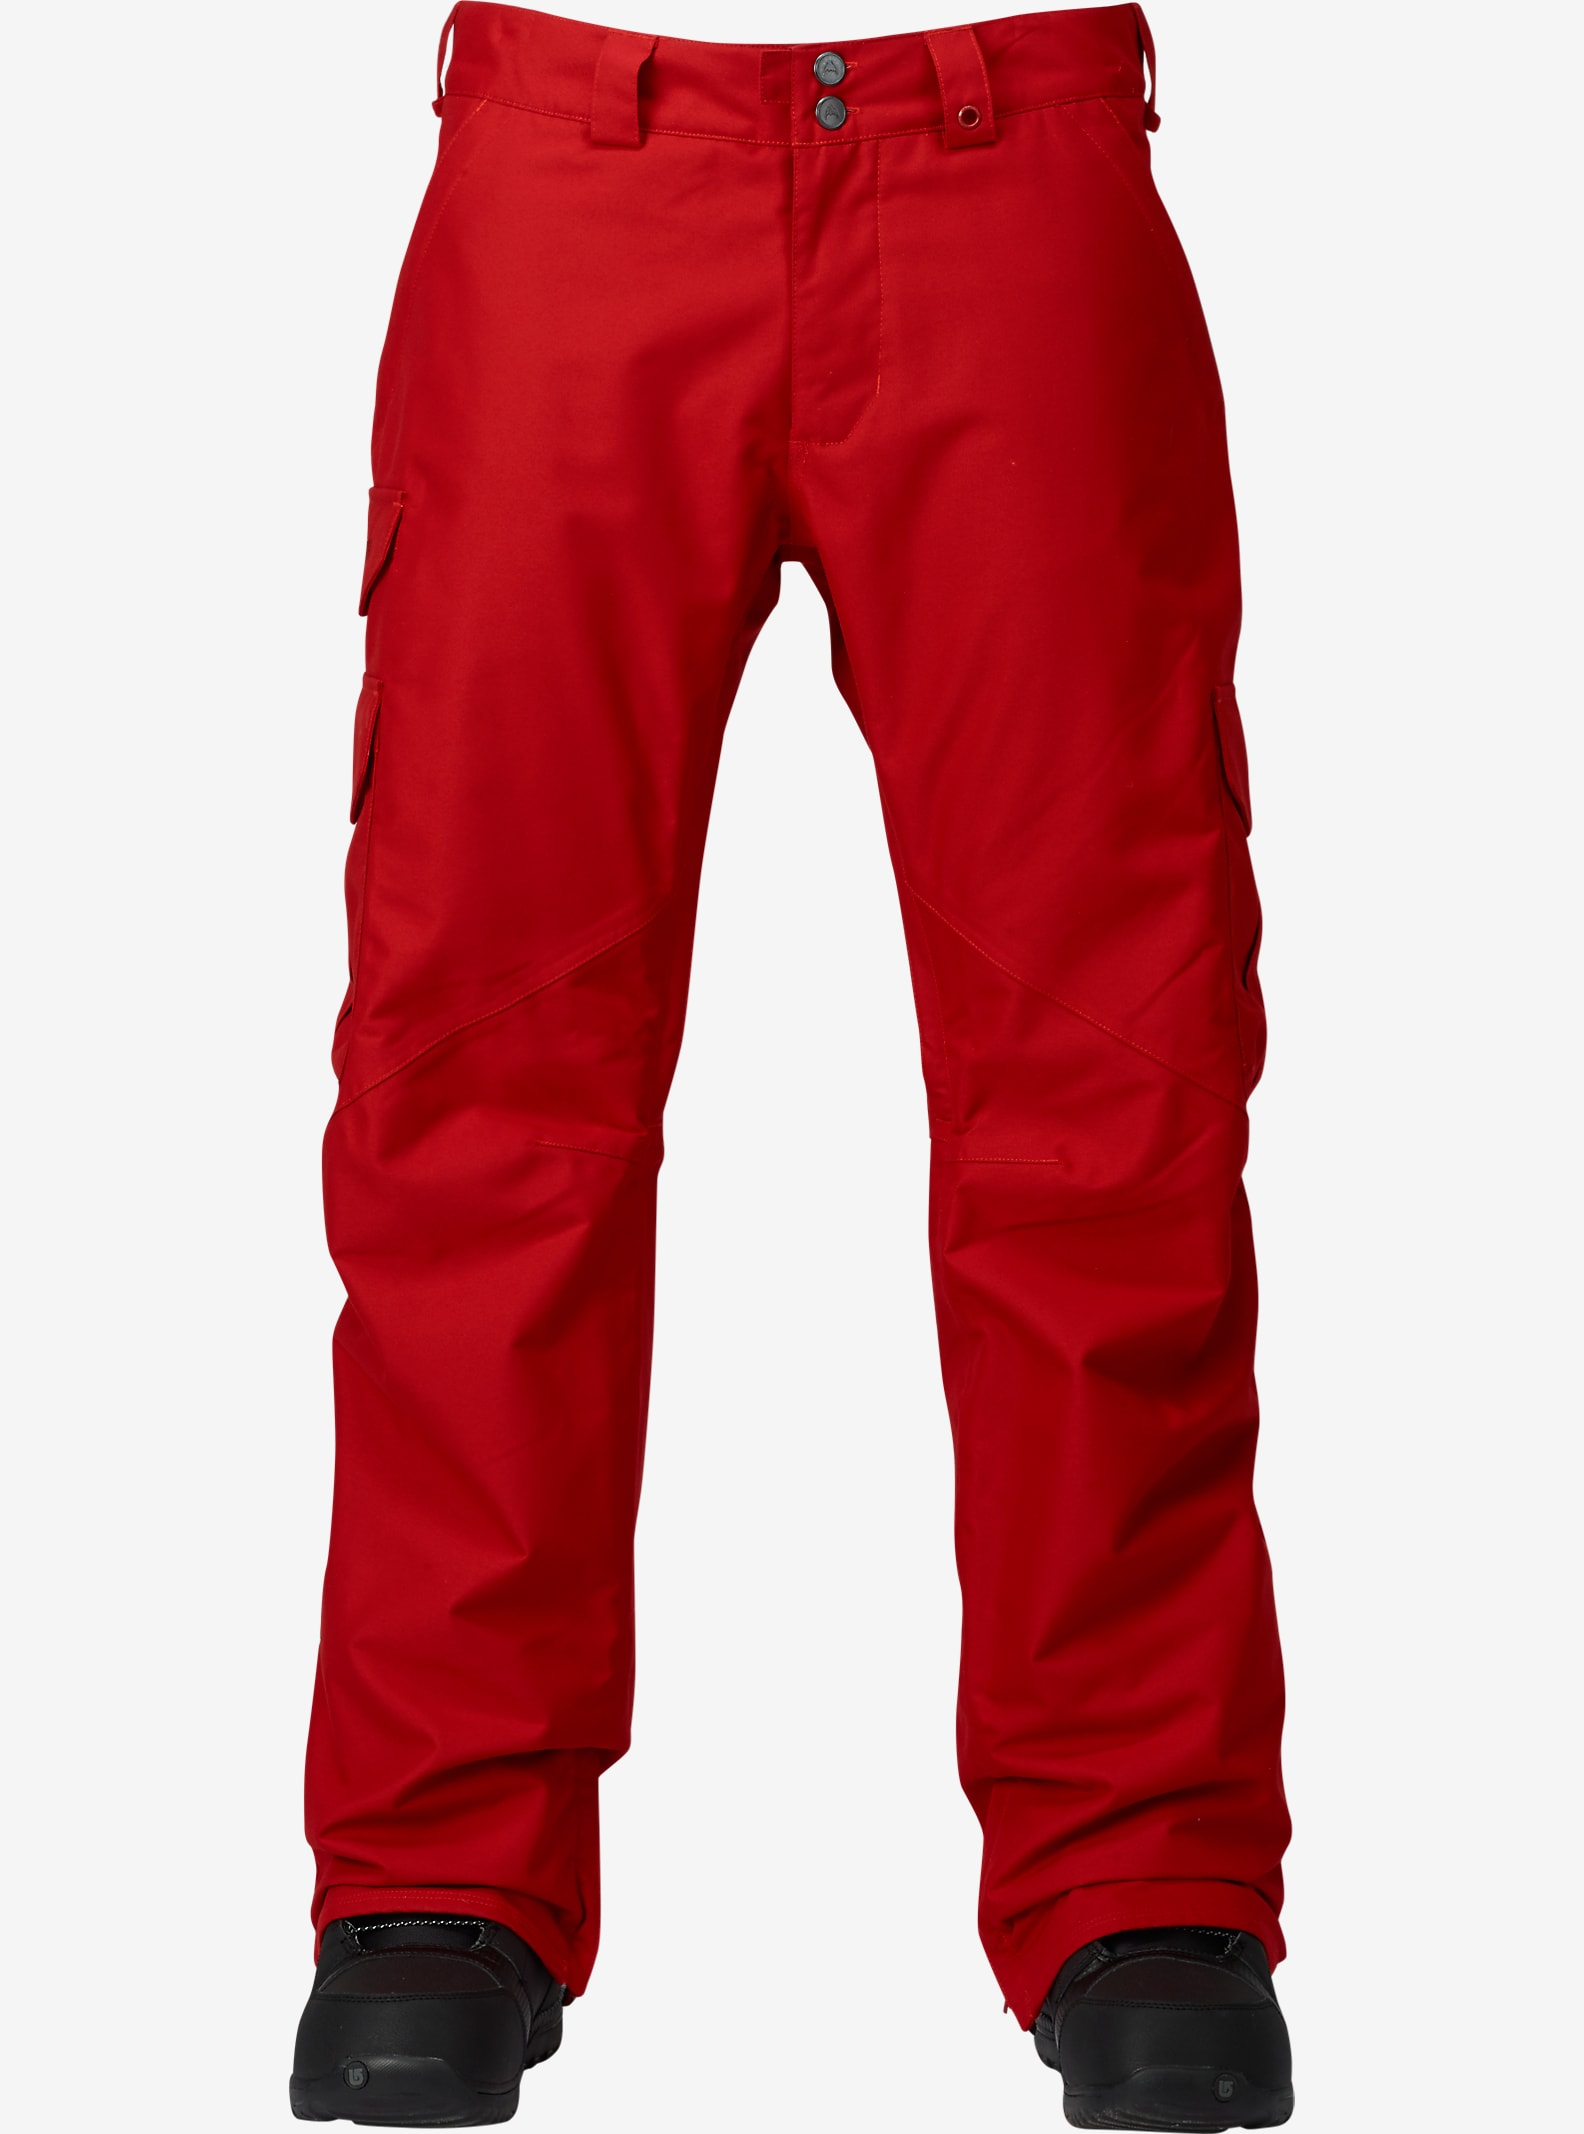 Burton Cargo Pant - Short shown in Process Red